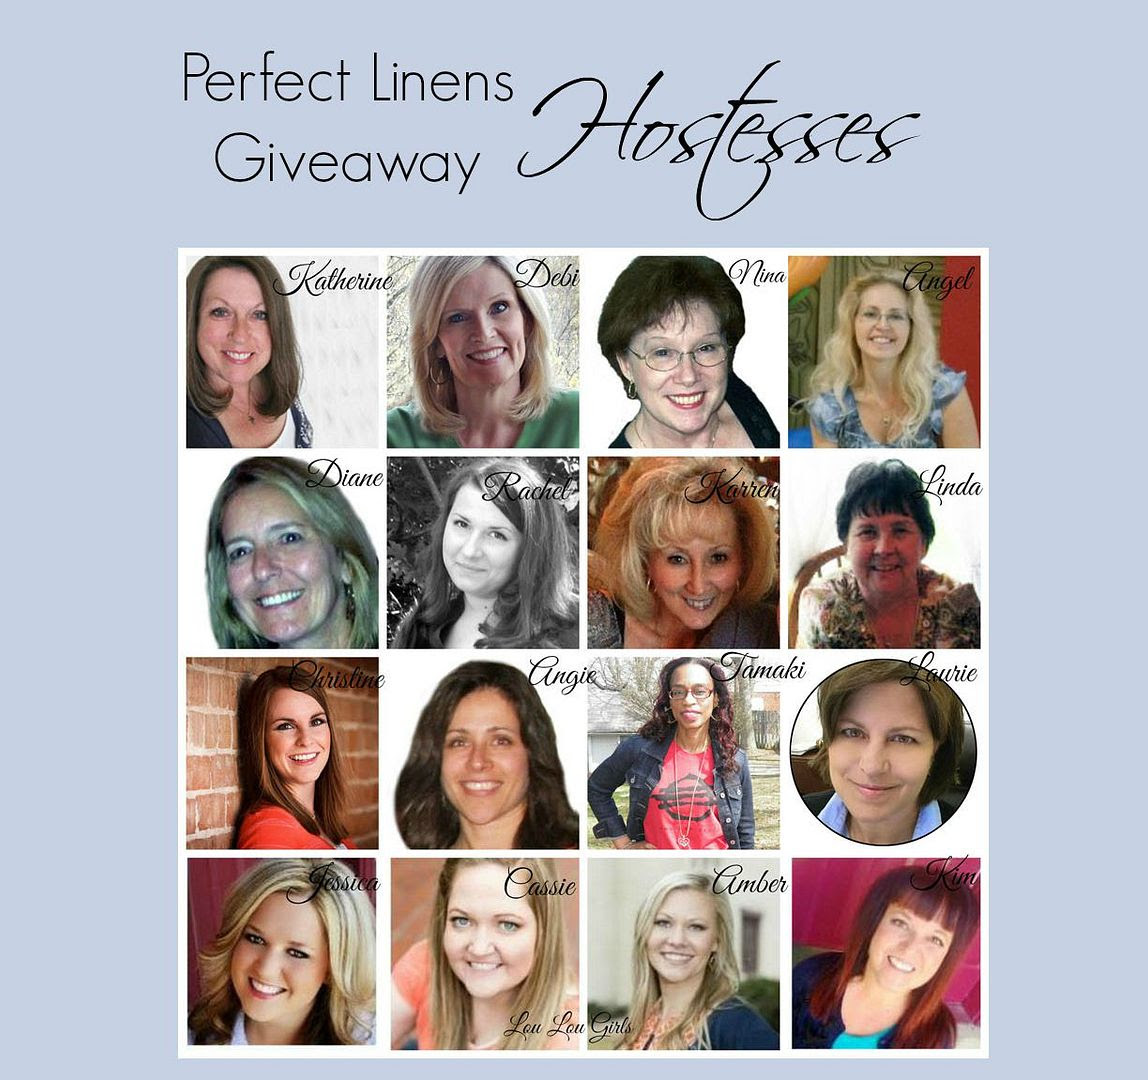 photo KATIE perfect linens giveaway hostesses_zps7p0dfyvr.jpg